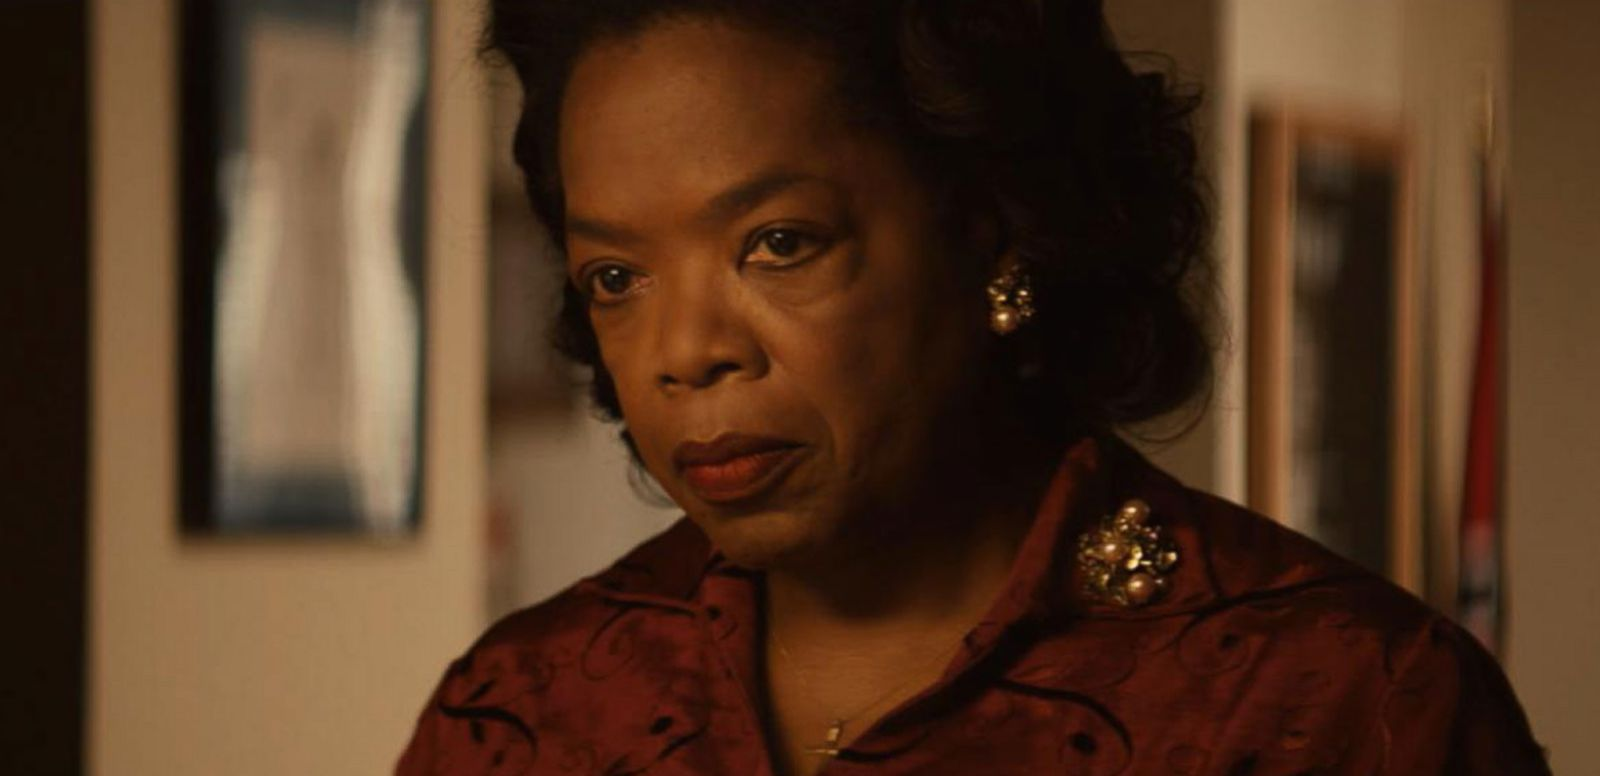 VIDEO: Oprah Winfrey on the Powerful Biopic of Martin Luther King Jr.